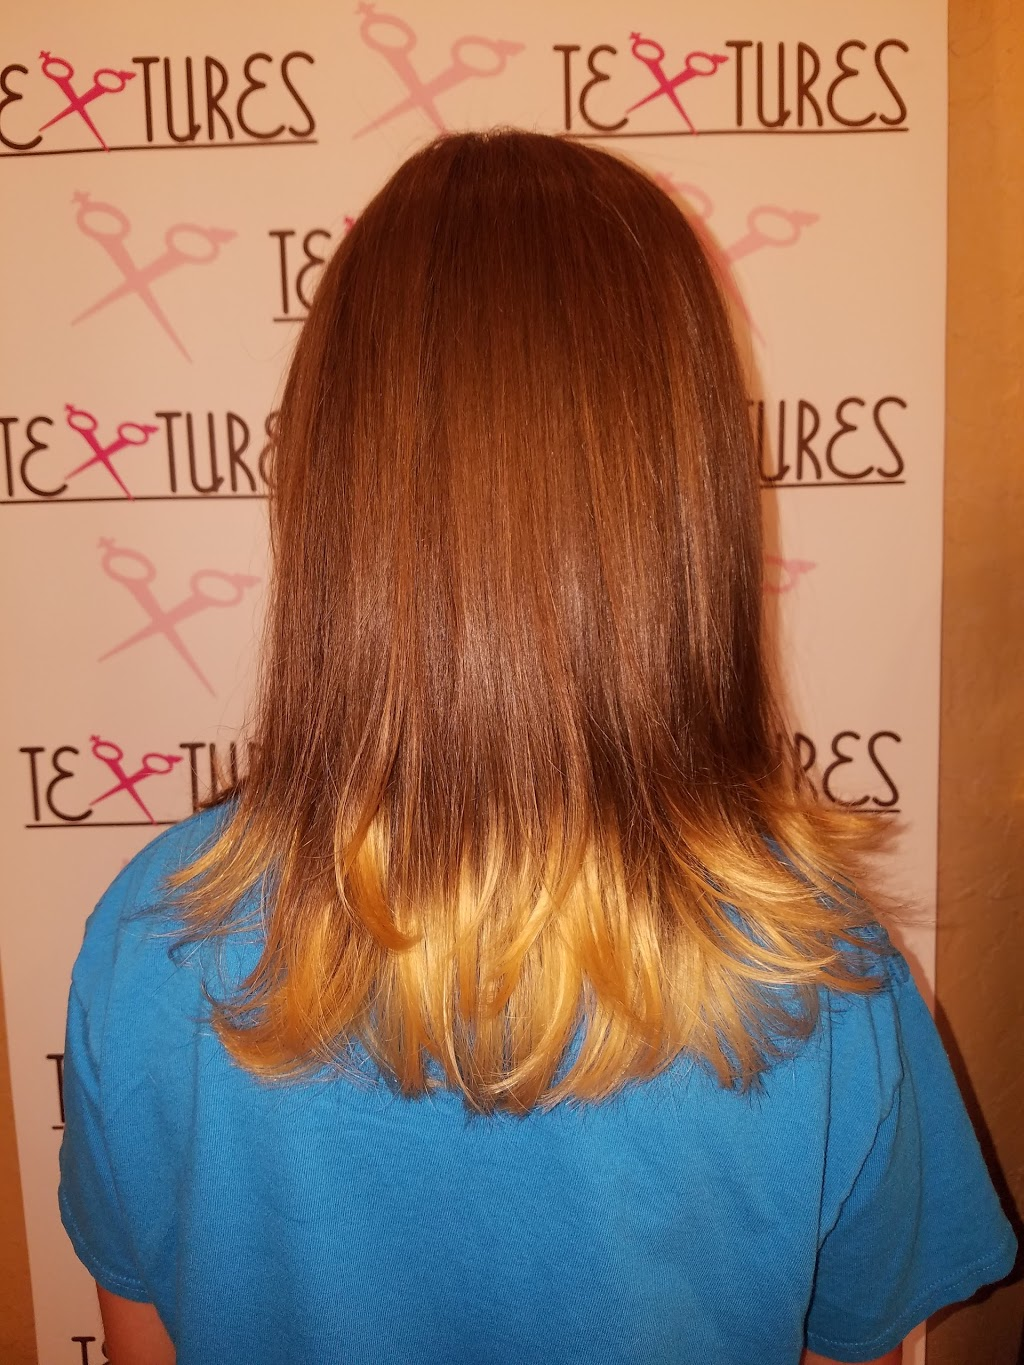 Textures Full Services Salon - hair care  | Photo 8 of 10 | Address: 911 Rte 50 suite a, Mays Landing, NJ 08330, USA | Phone: (609) 625-8678